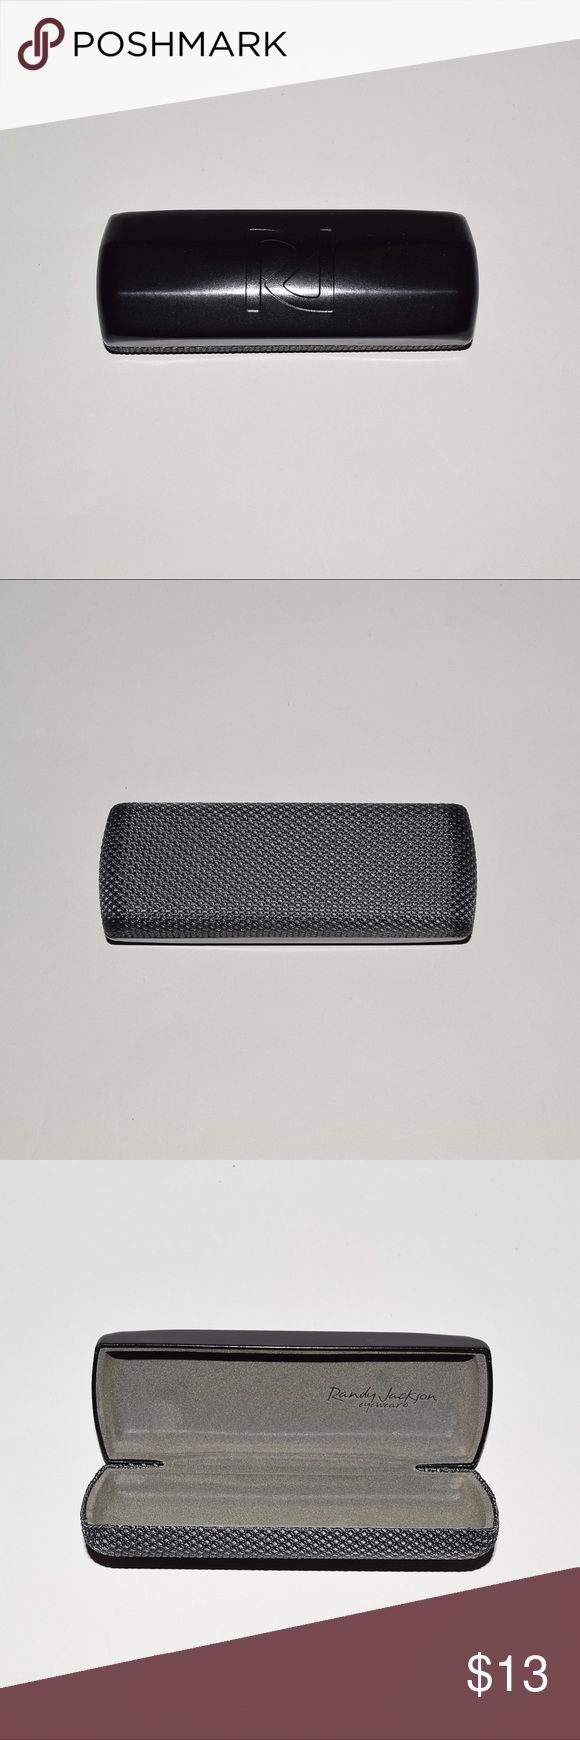 New Randy Jackson Eyeglasses Hard Shell Case Black Brand: Randy Jackson Item name: Eyeglasses / Sunglasses Hard Shell Case Condition: Brand new. Maesurements: L 6, W 2.25, H 1.5 inches  Please check your eyeglasses/sunglasses measurements for proper fit before purchasing. Randy Jackson Accessories Sunglasses